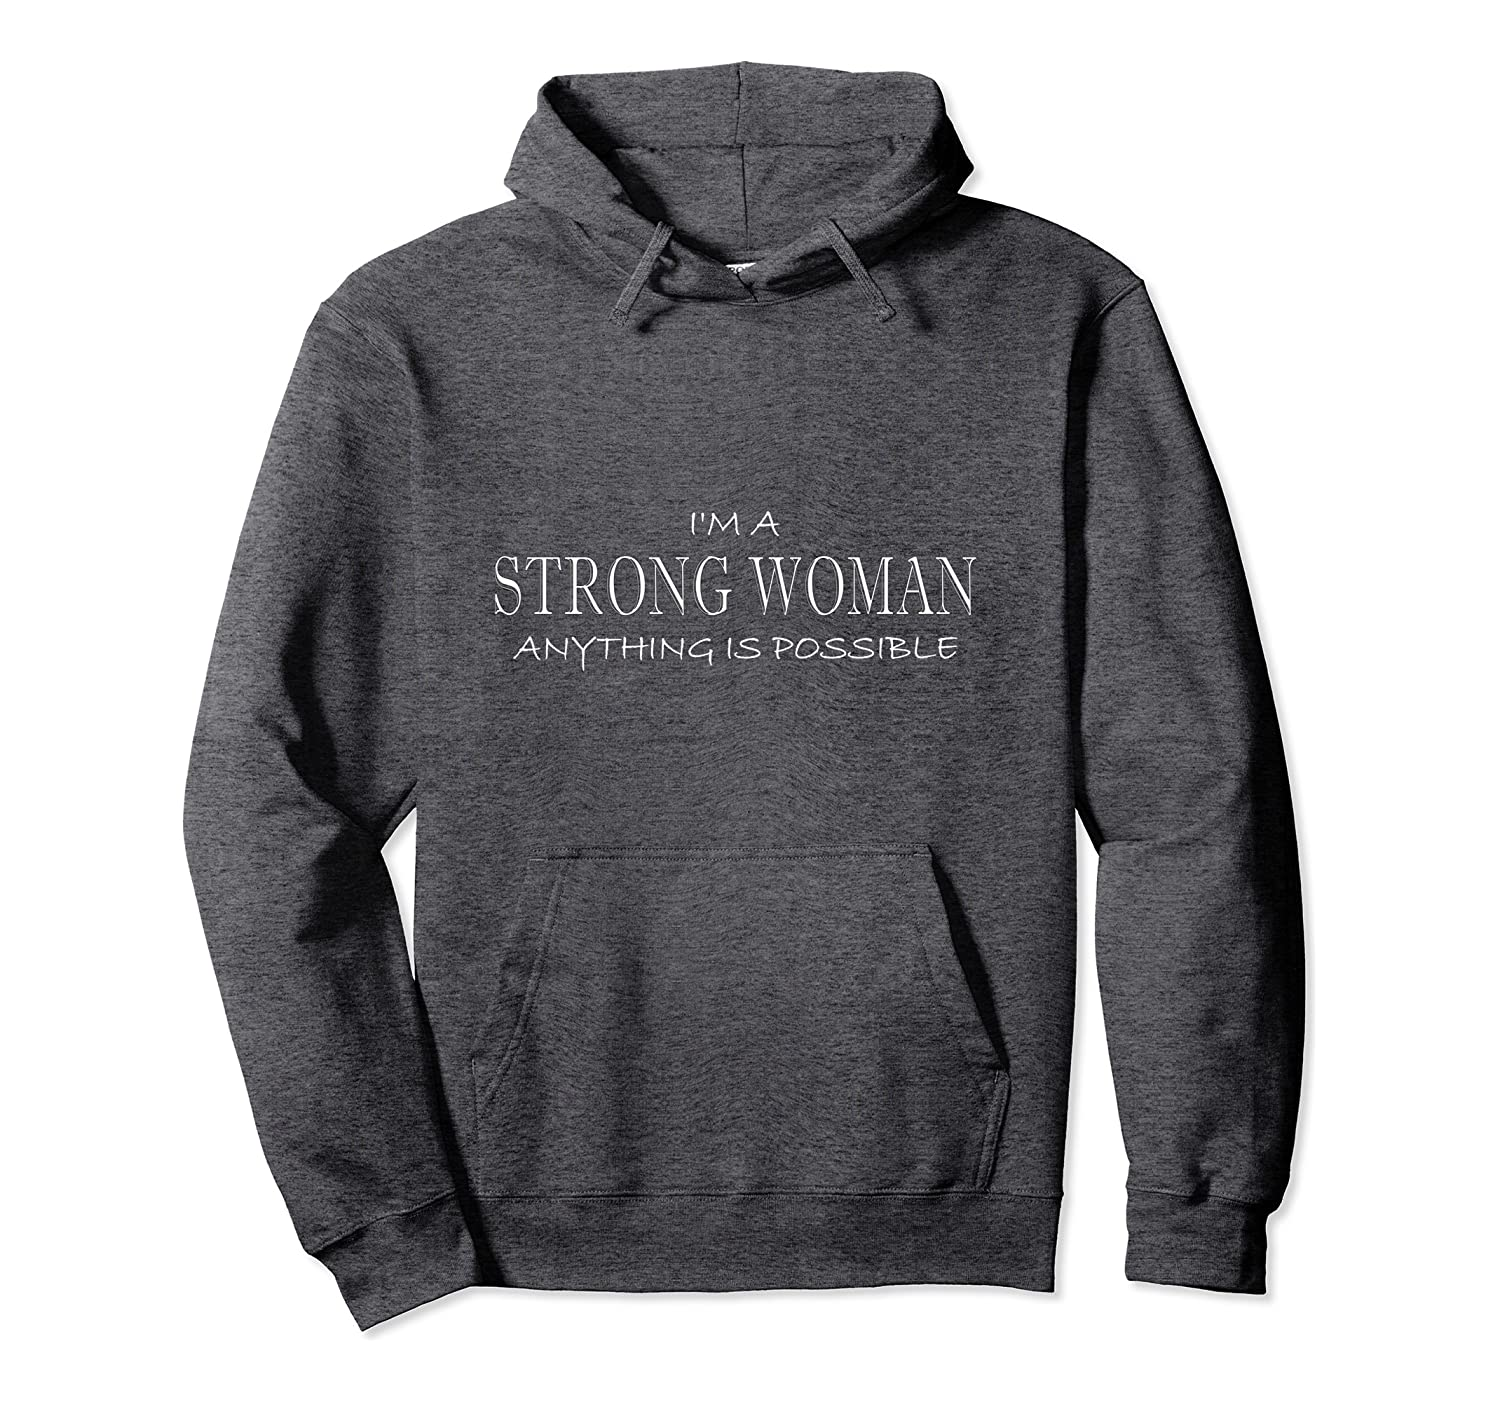 STRONG WOMAN Anything Is Possible anti sexism oppression Hoodie